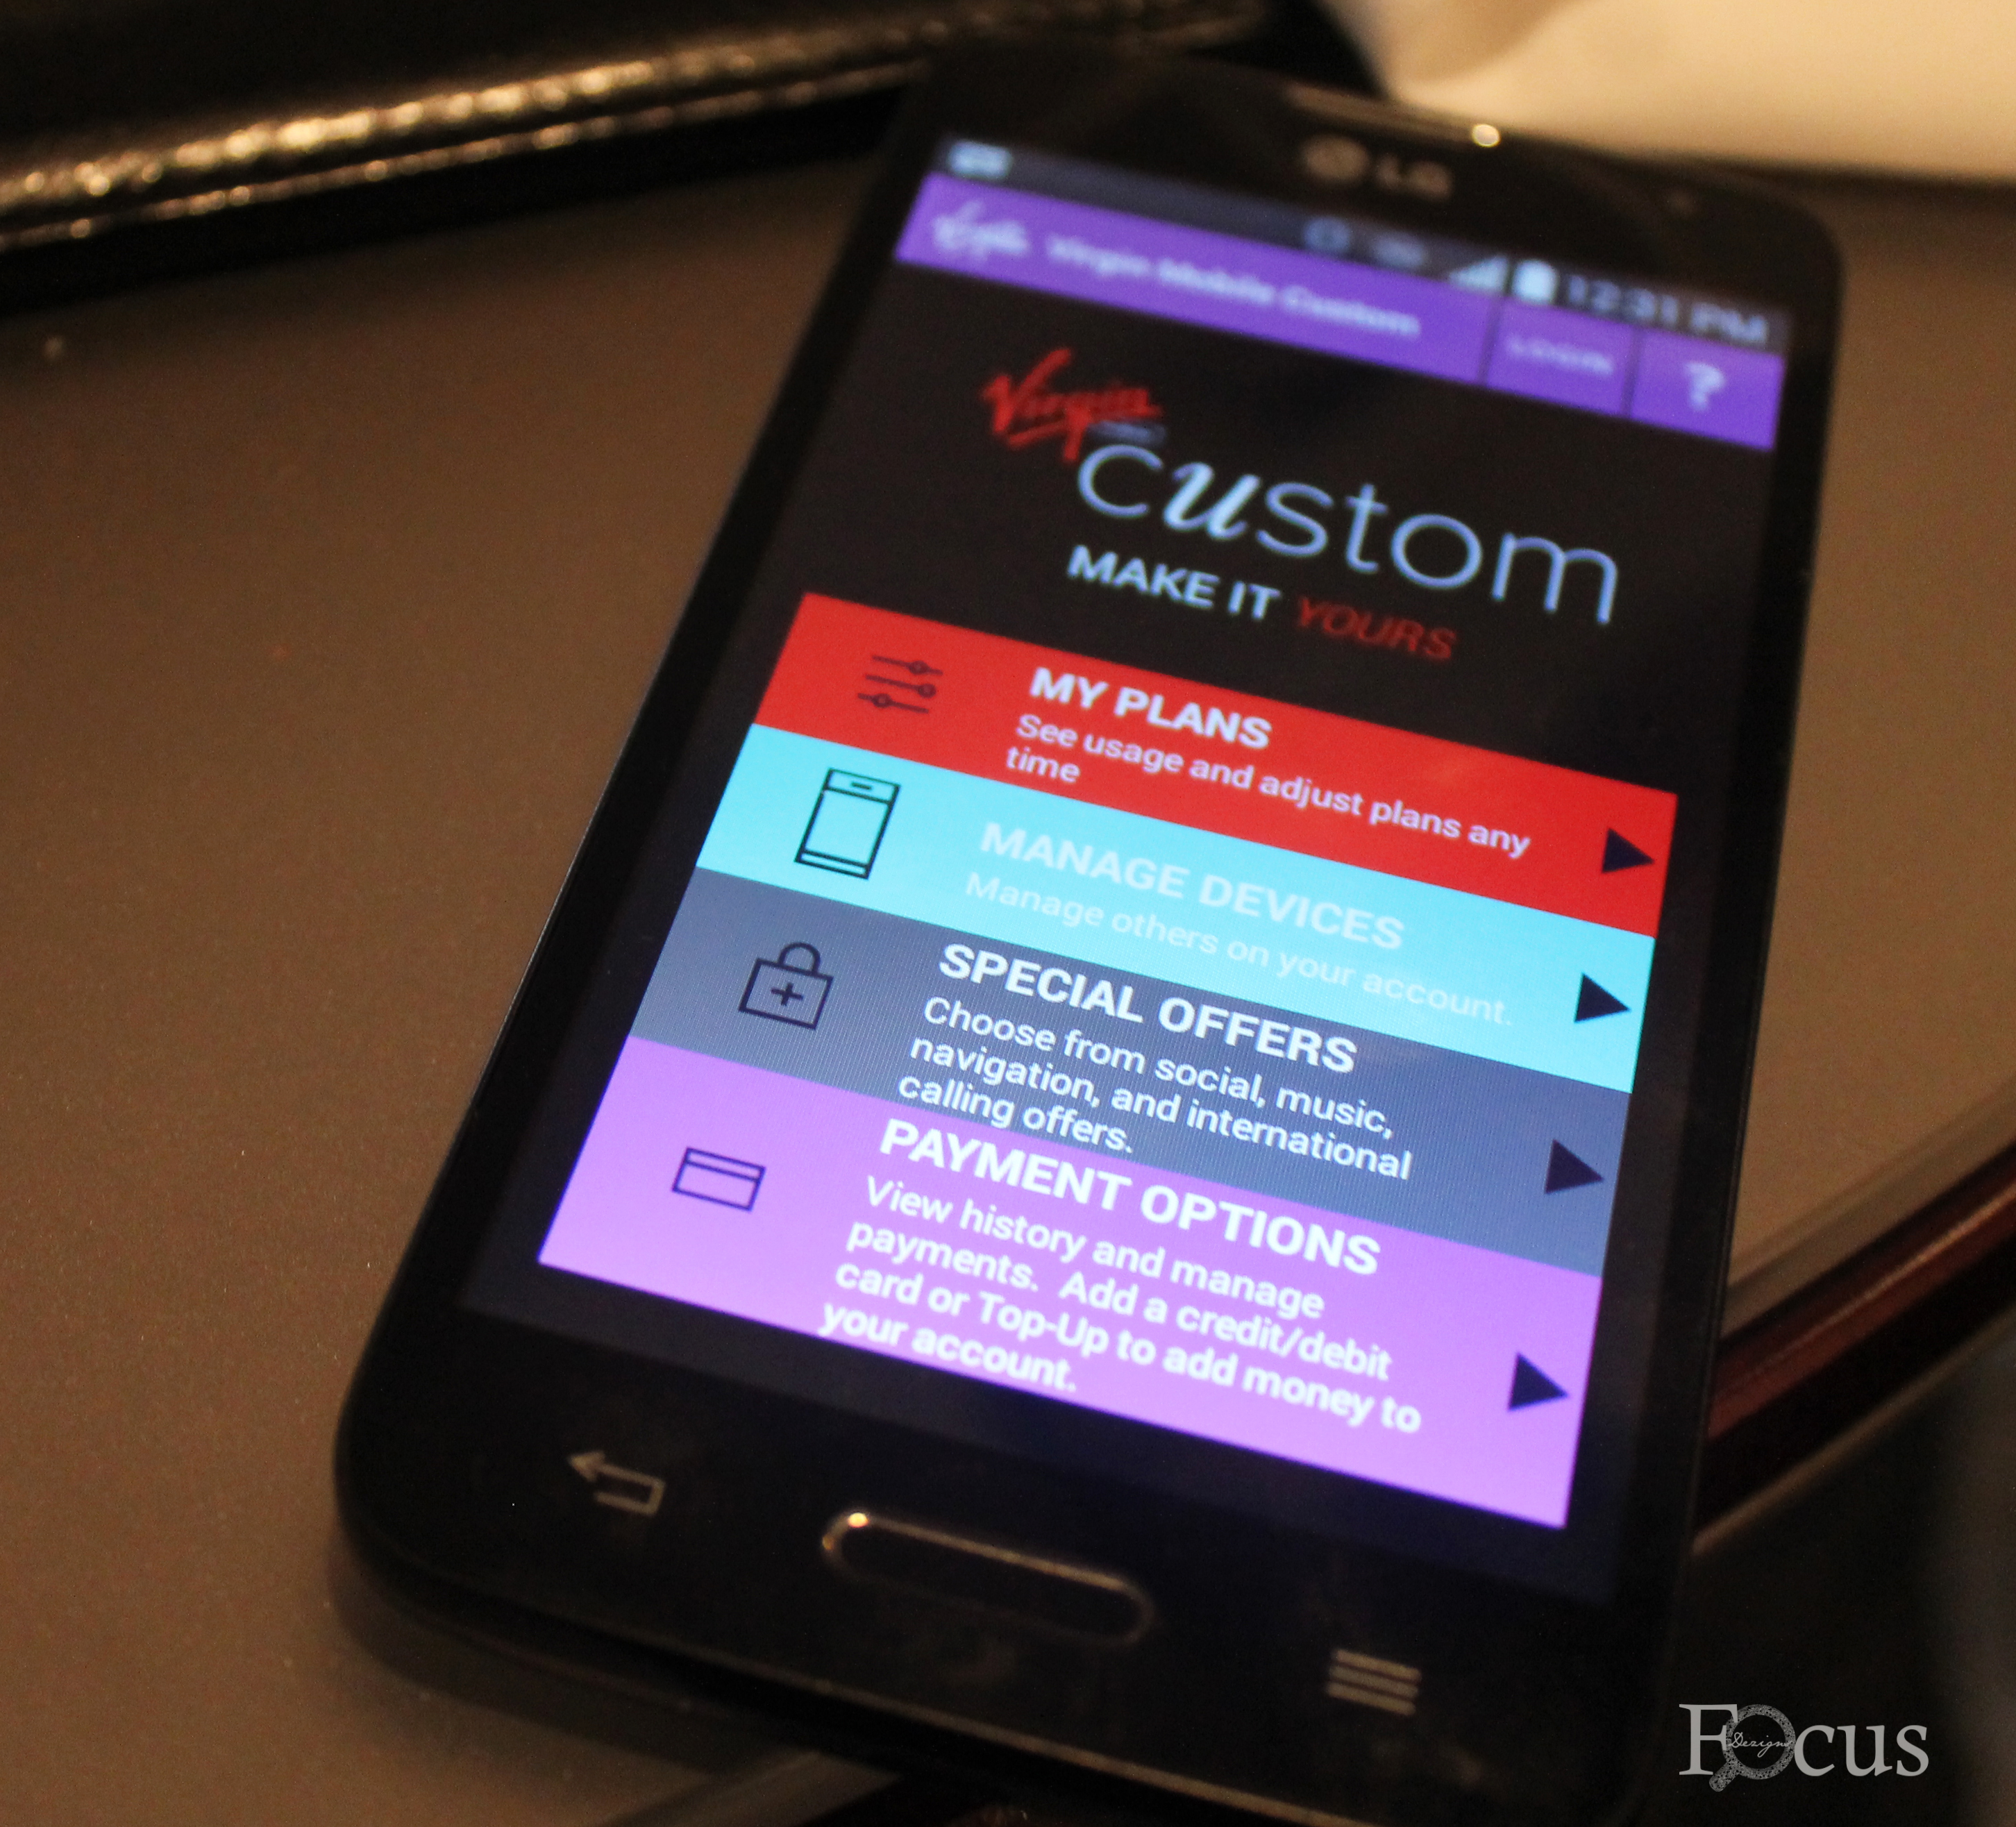 Introducing Virgin Mobile Custom | KoKoa Magazine